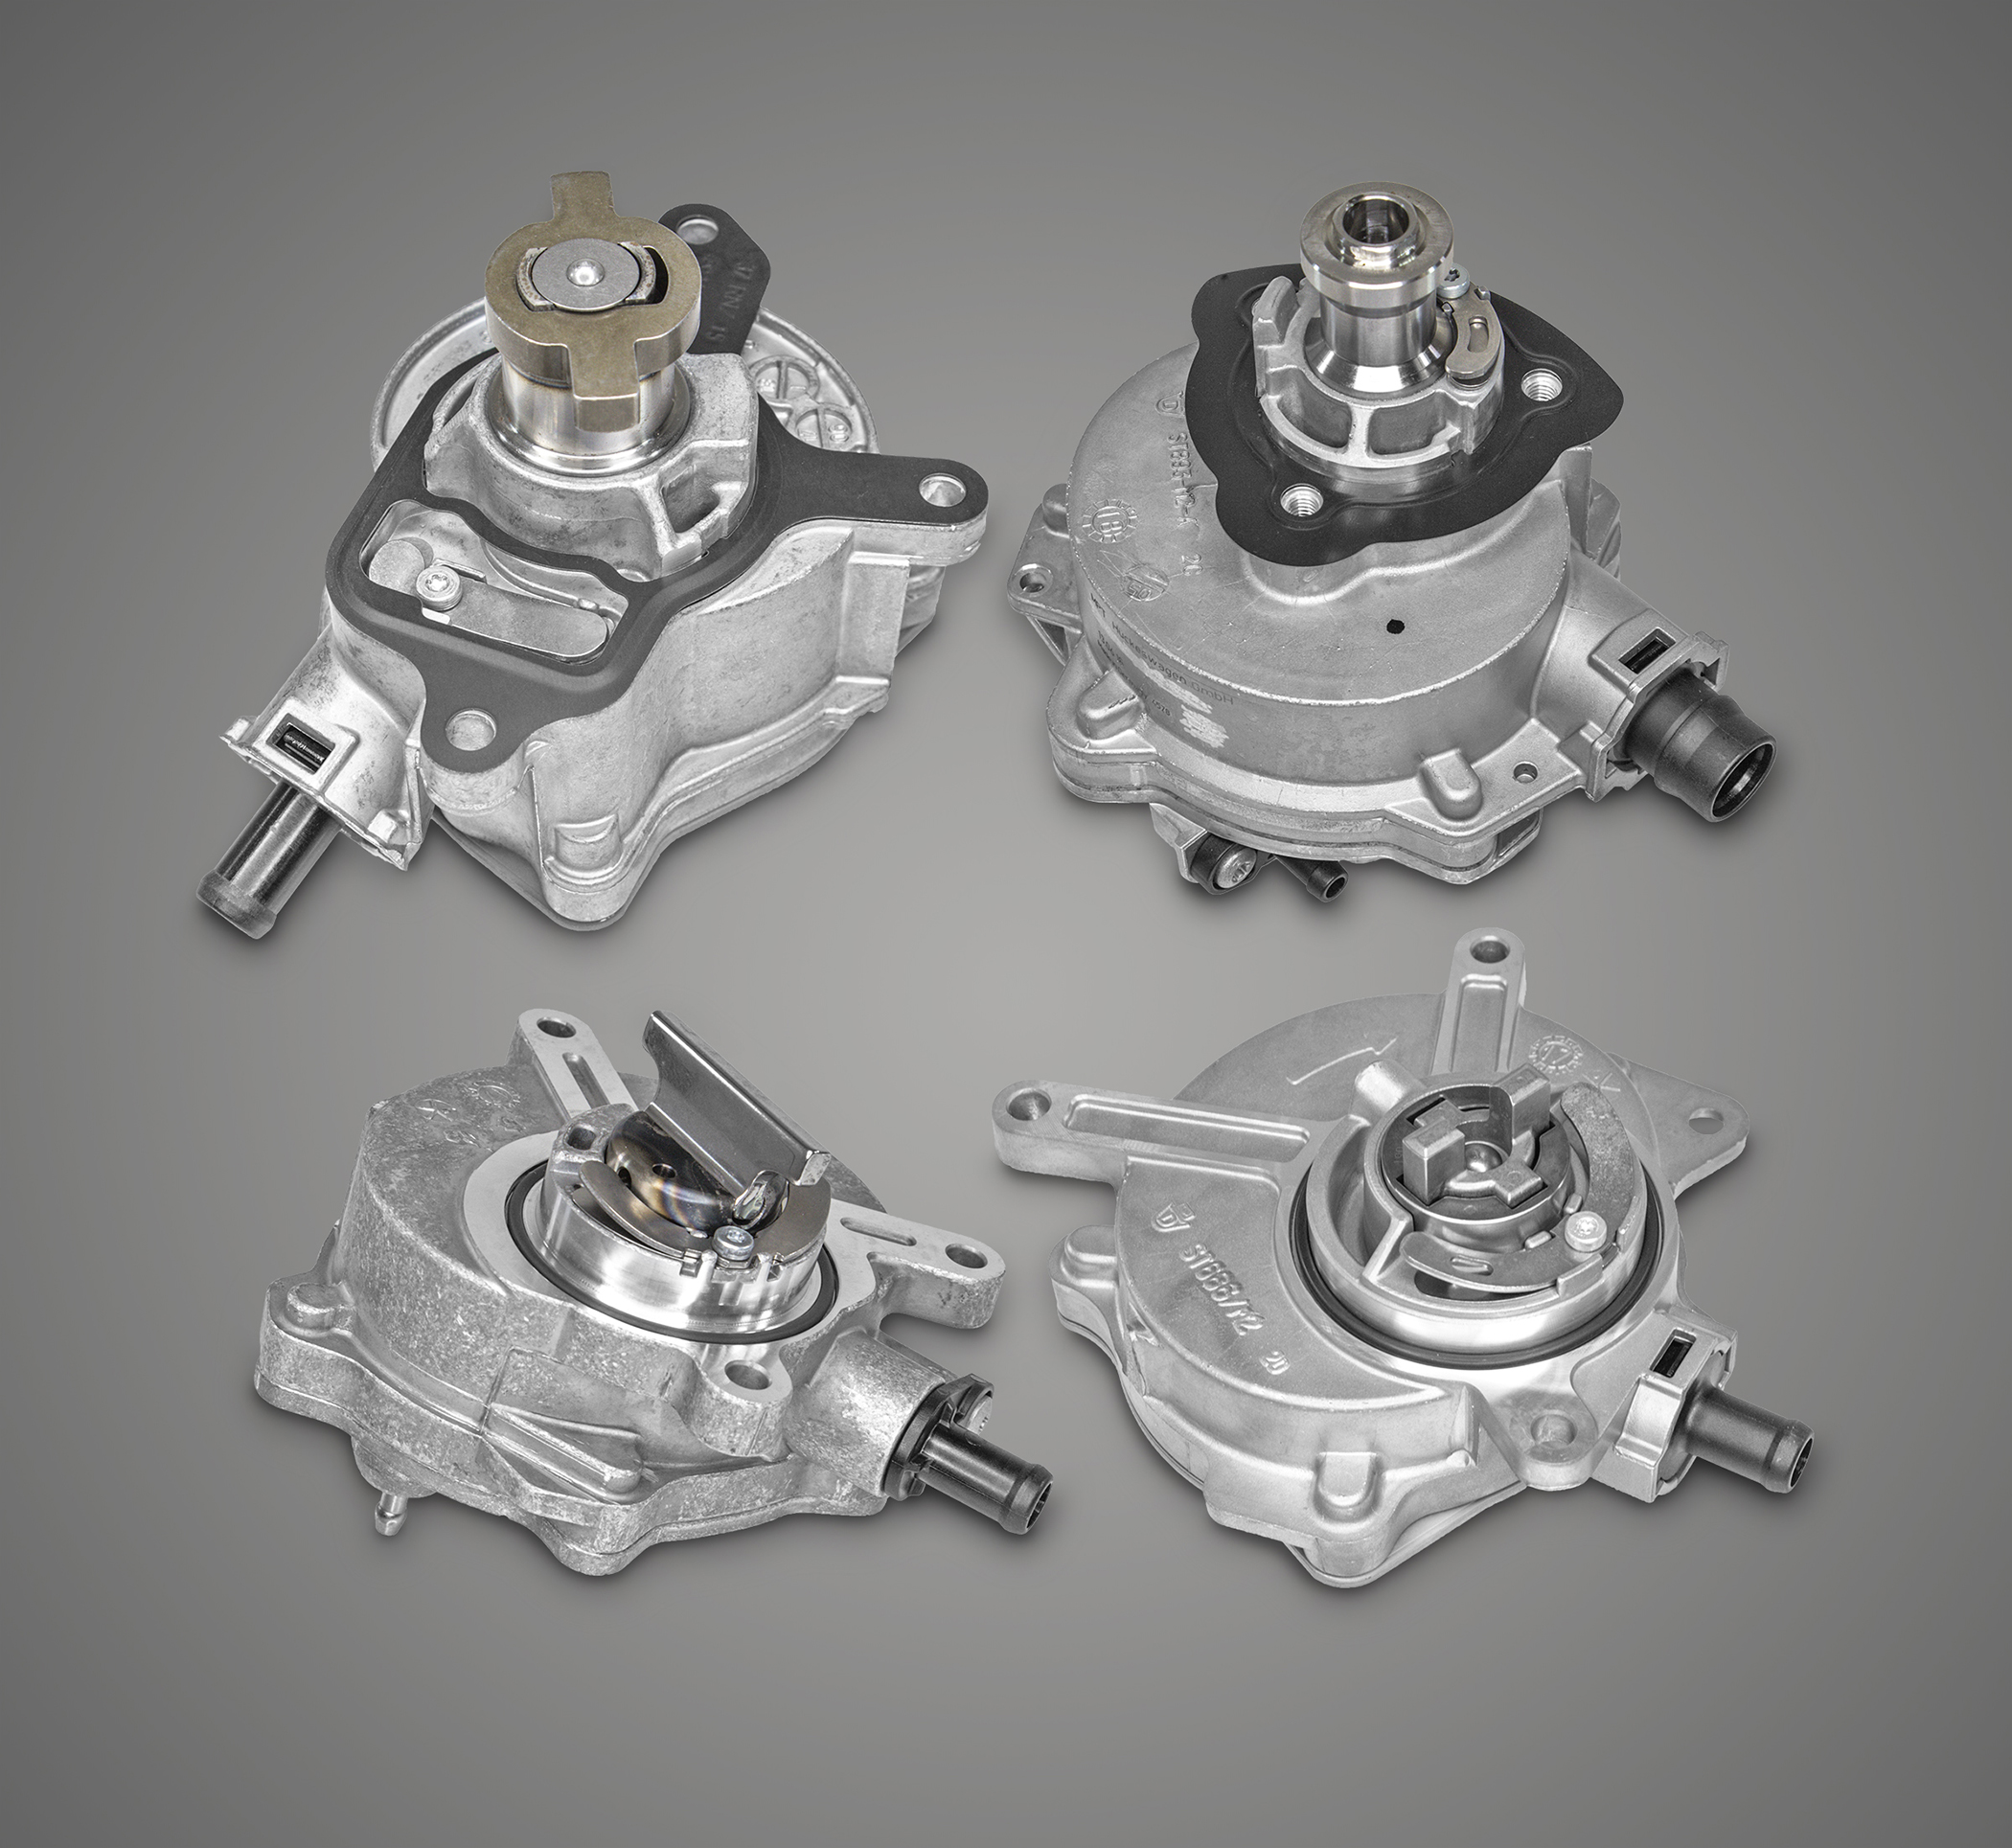 Rein Brake Vacuum Pumps Solve Performance and Safety Iissues